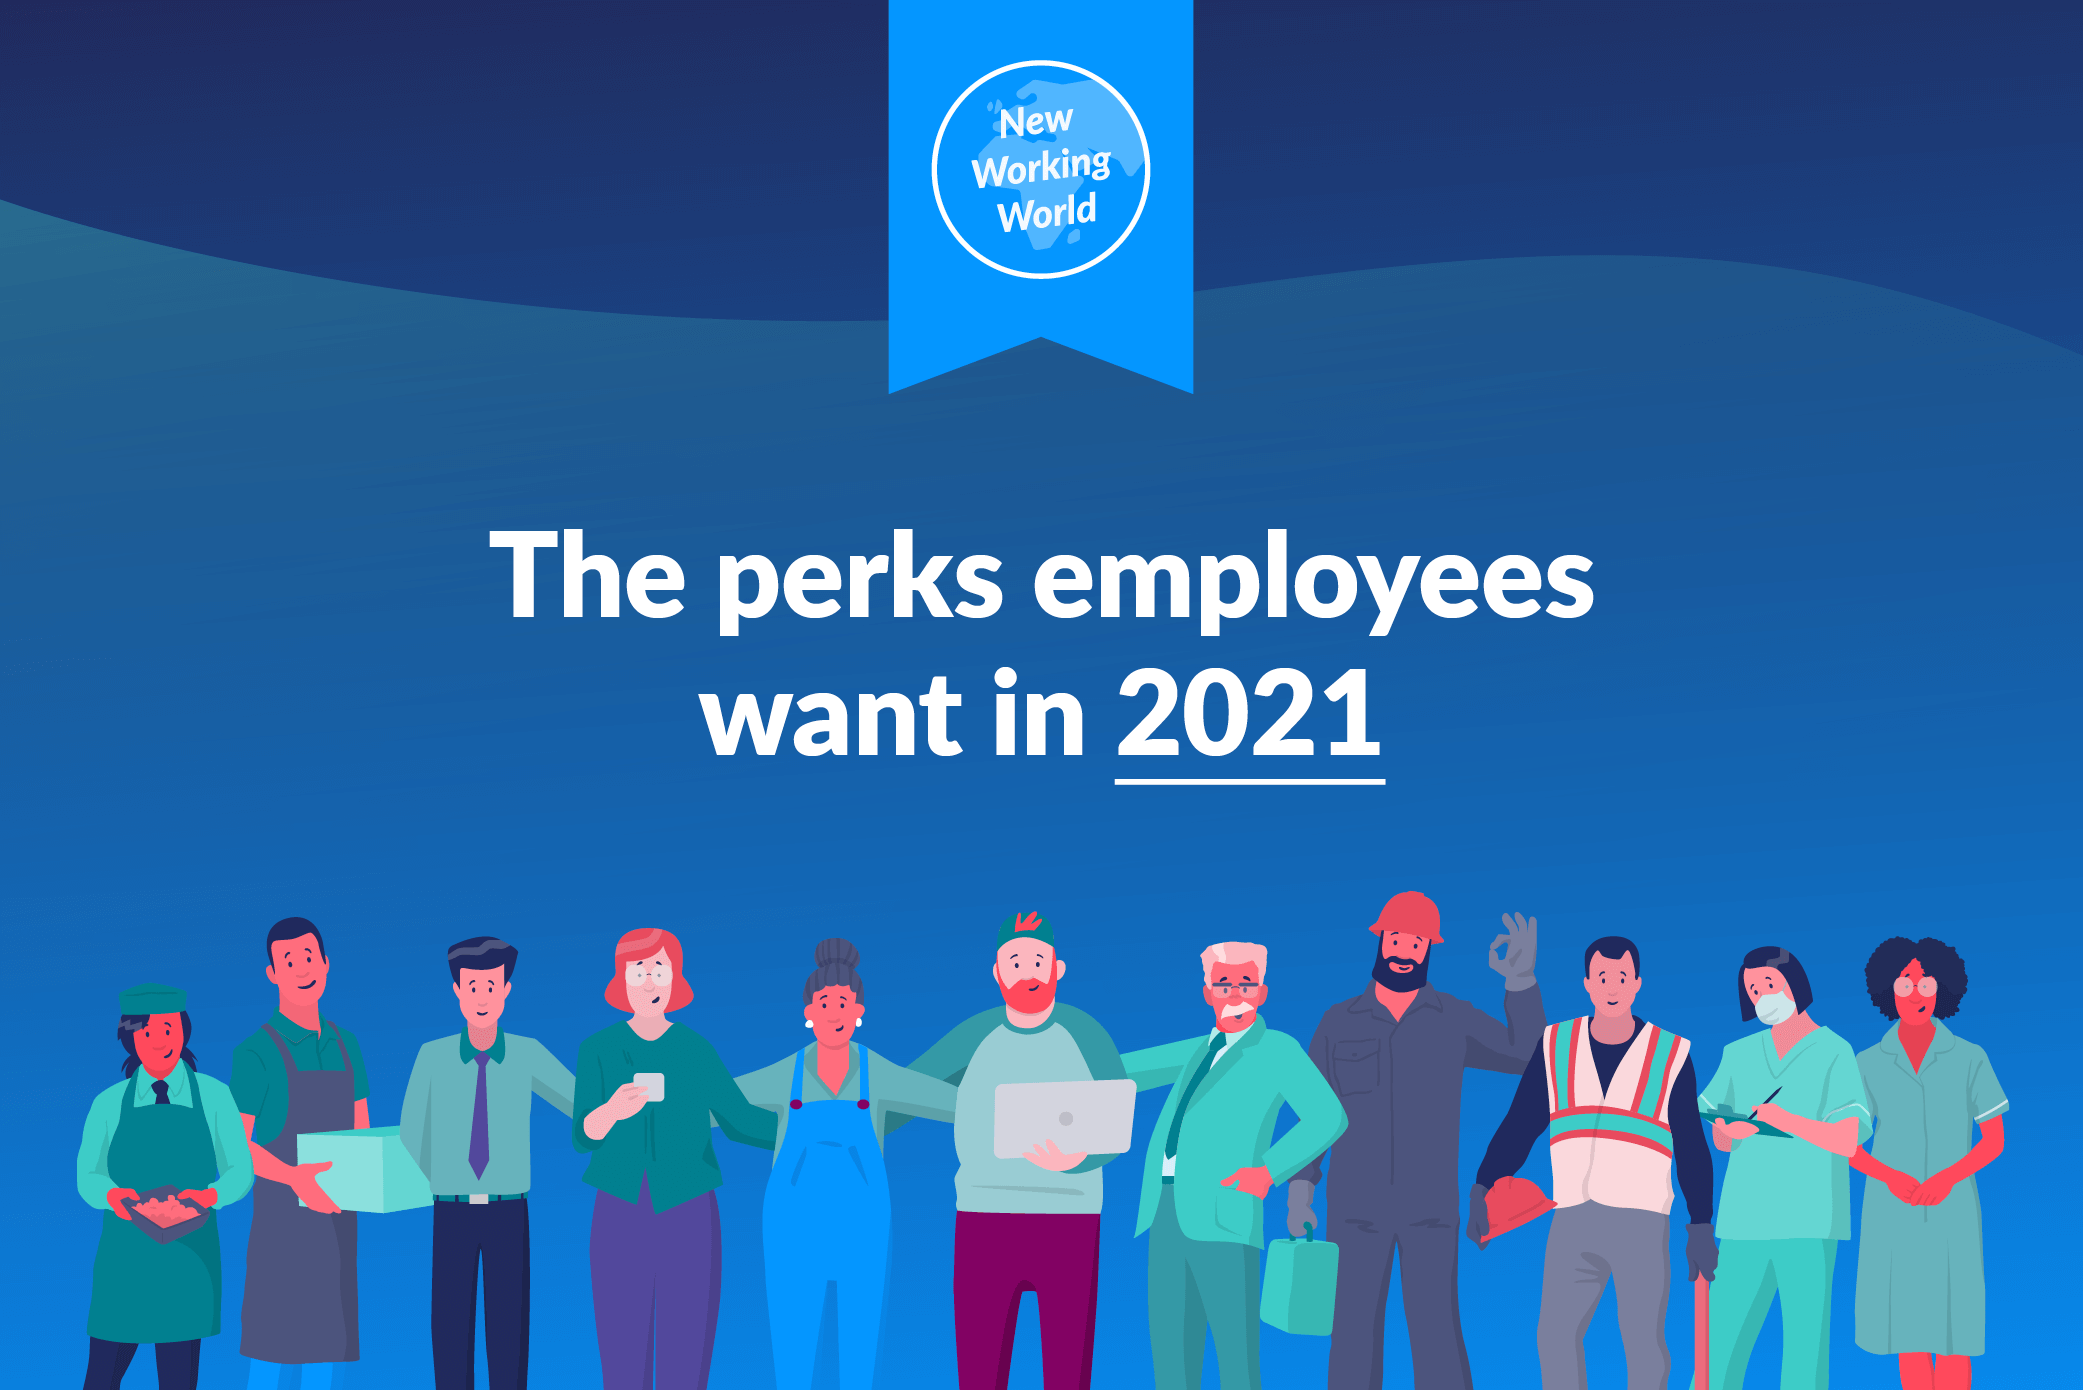 Perks employees want in 2021 cover